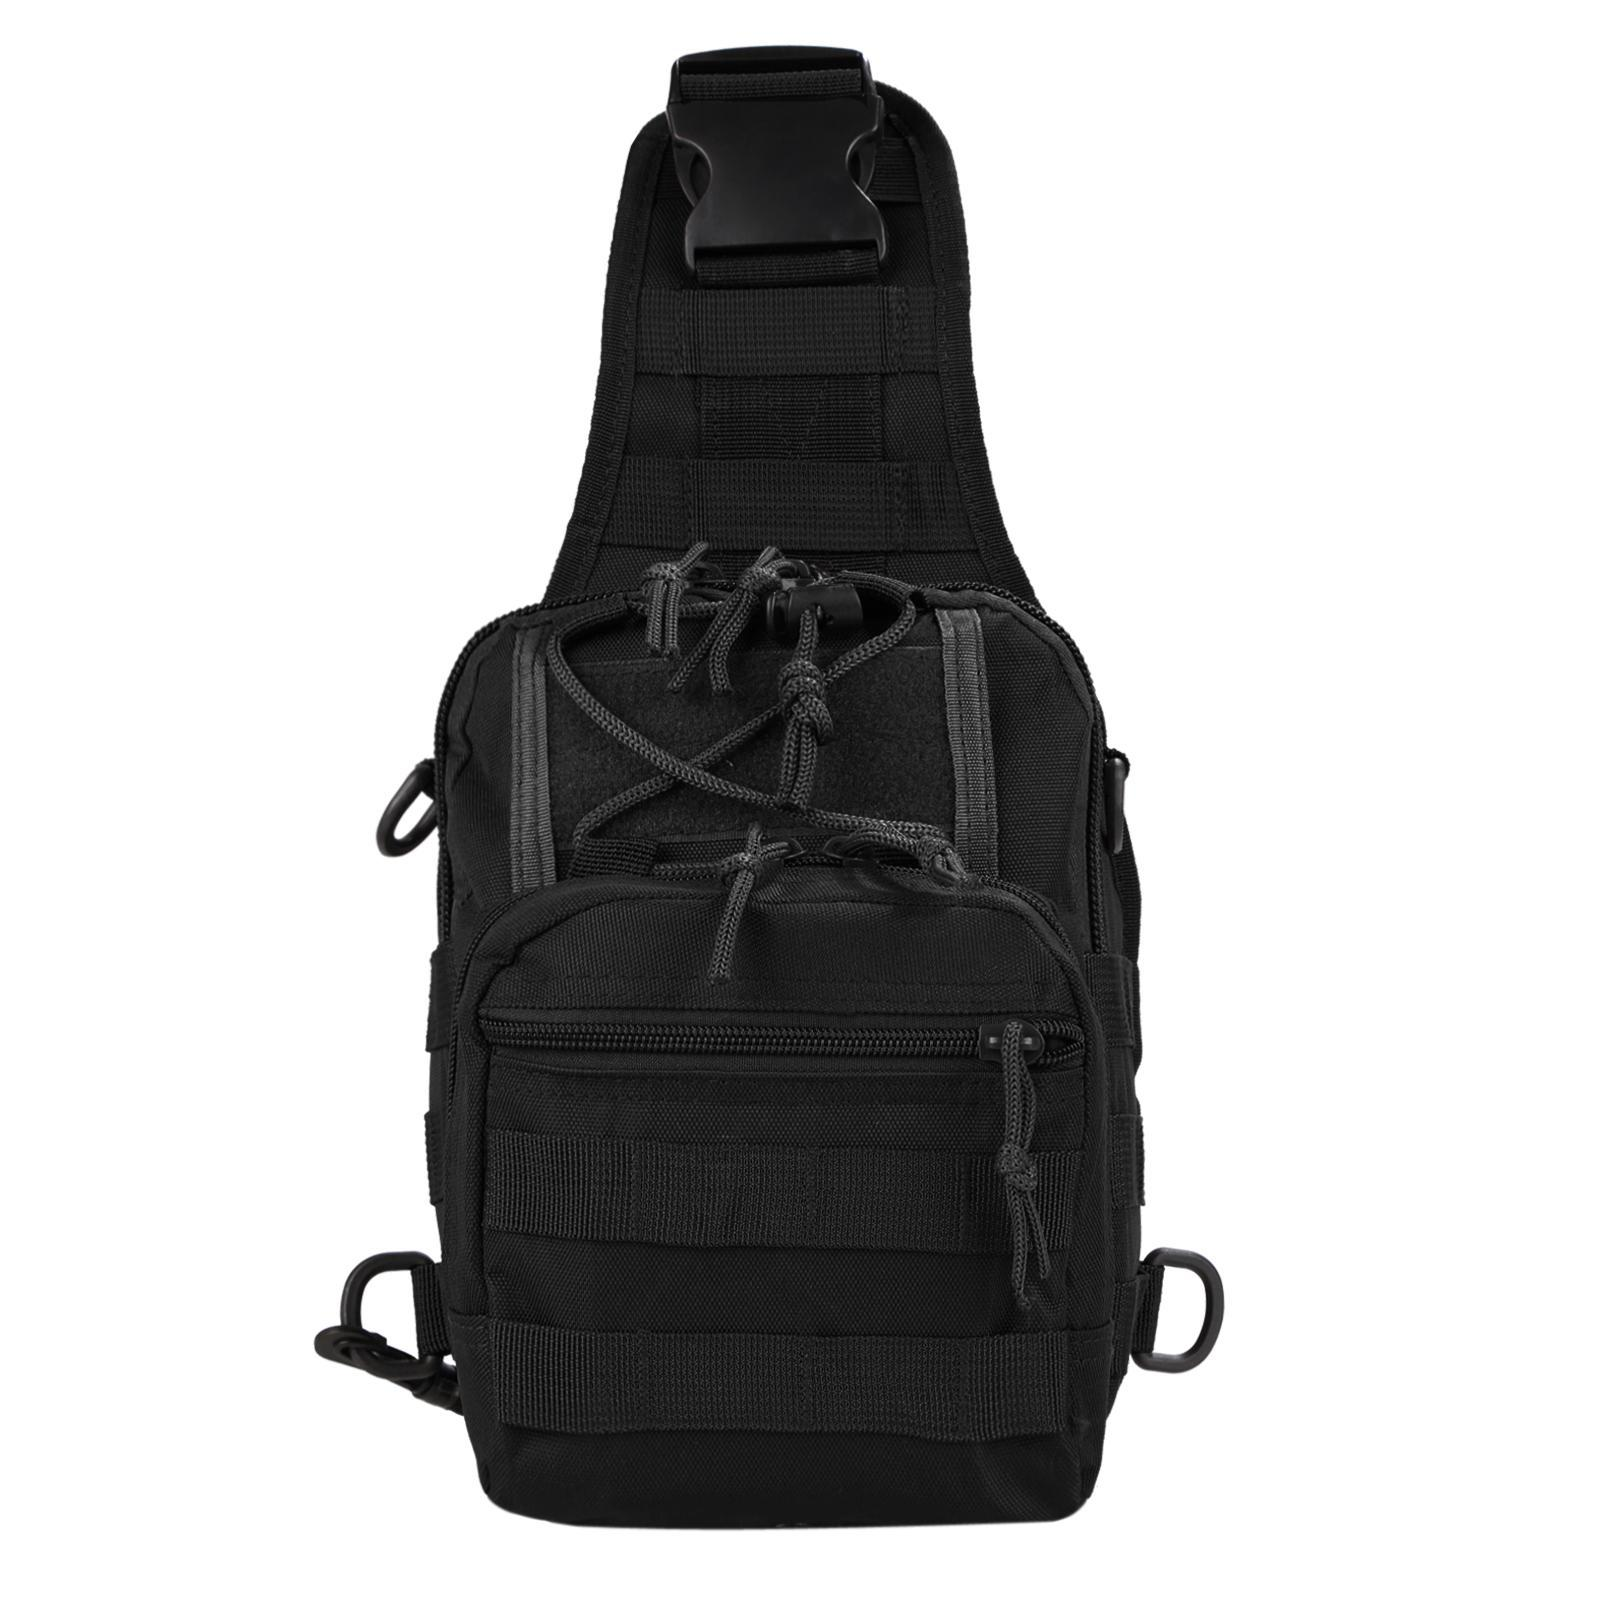 Canvas Multifunction Outdoor Casual Chest Pack Shoulder Bag 1